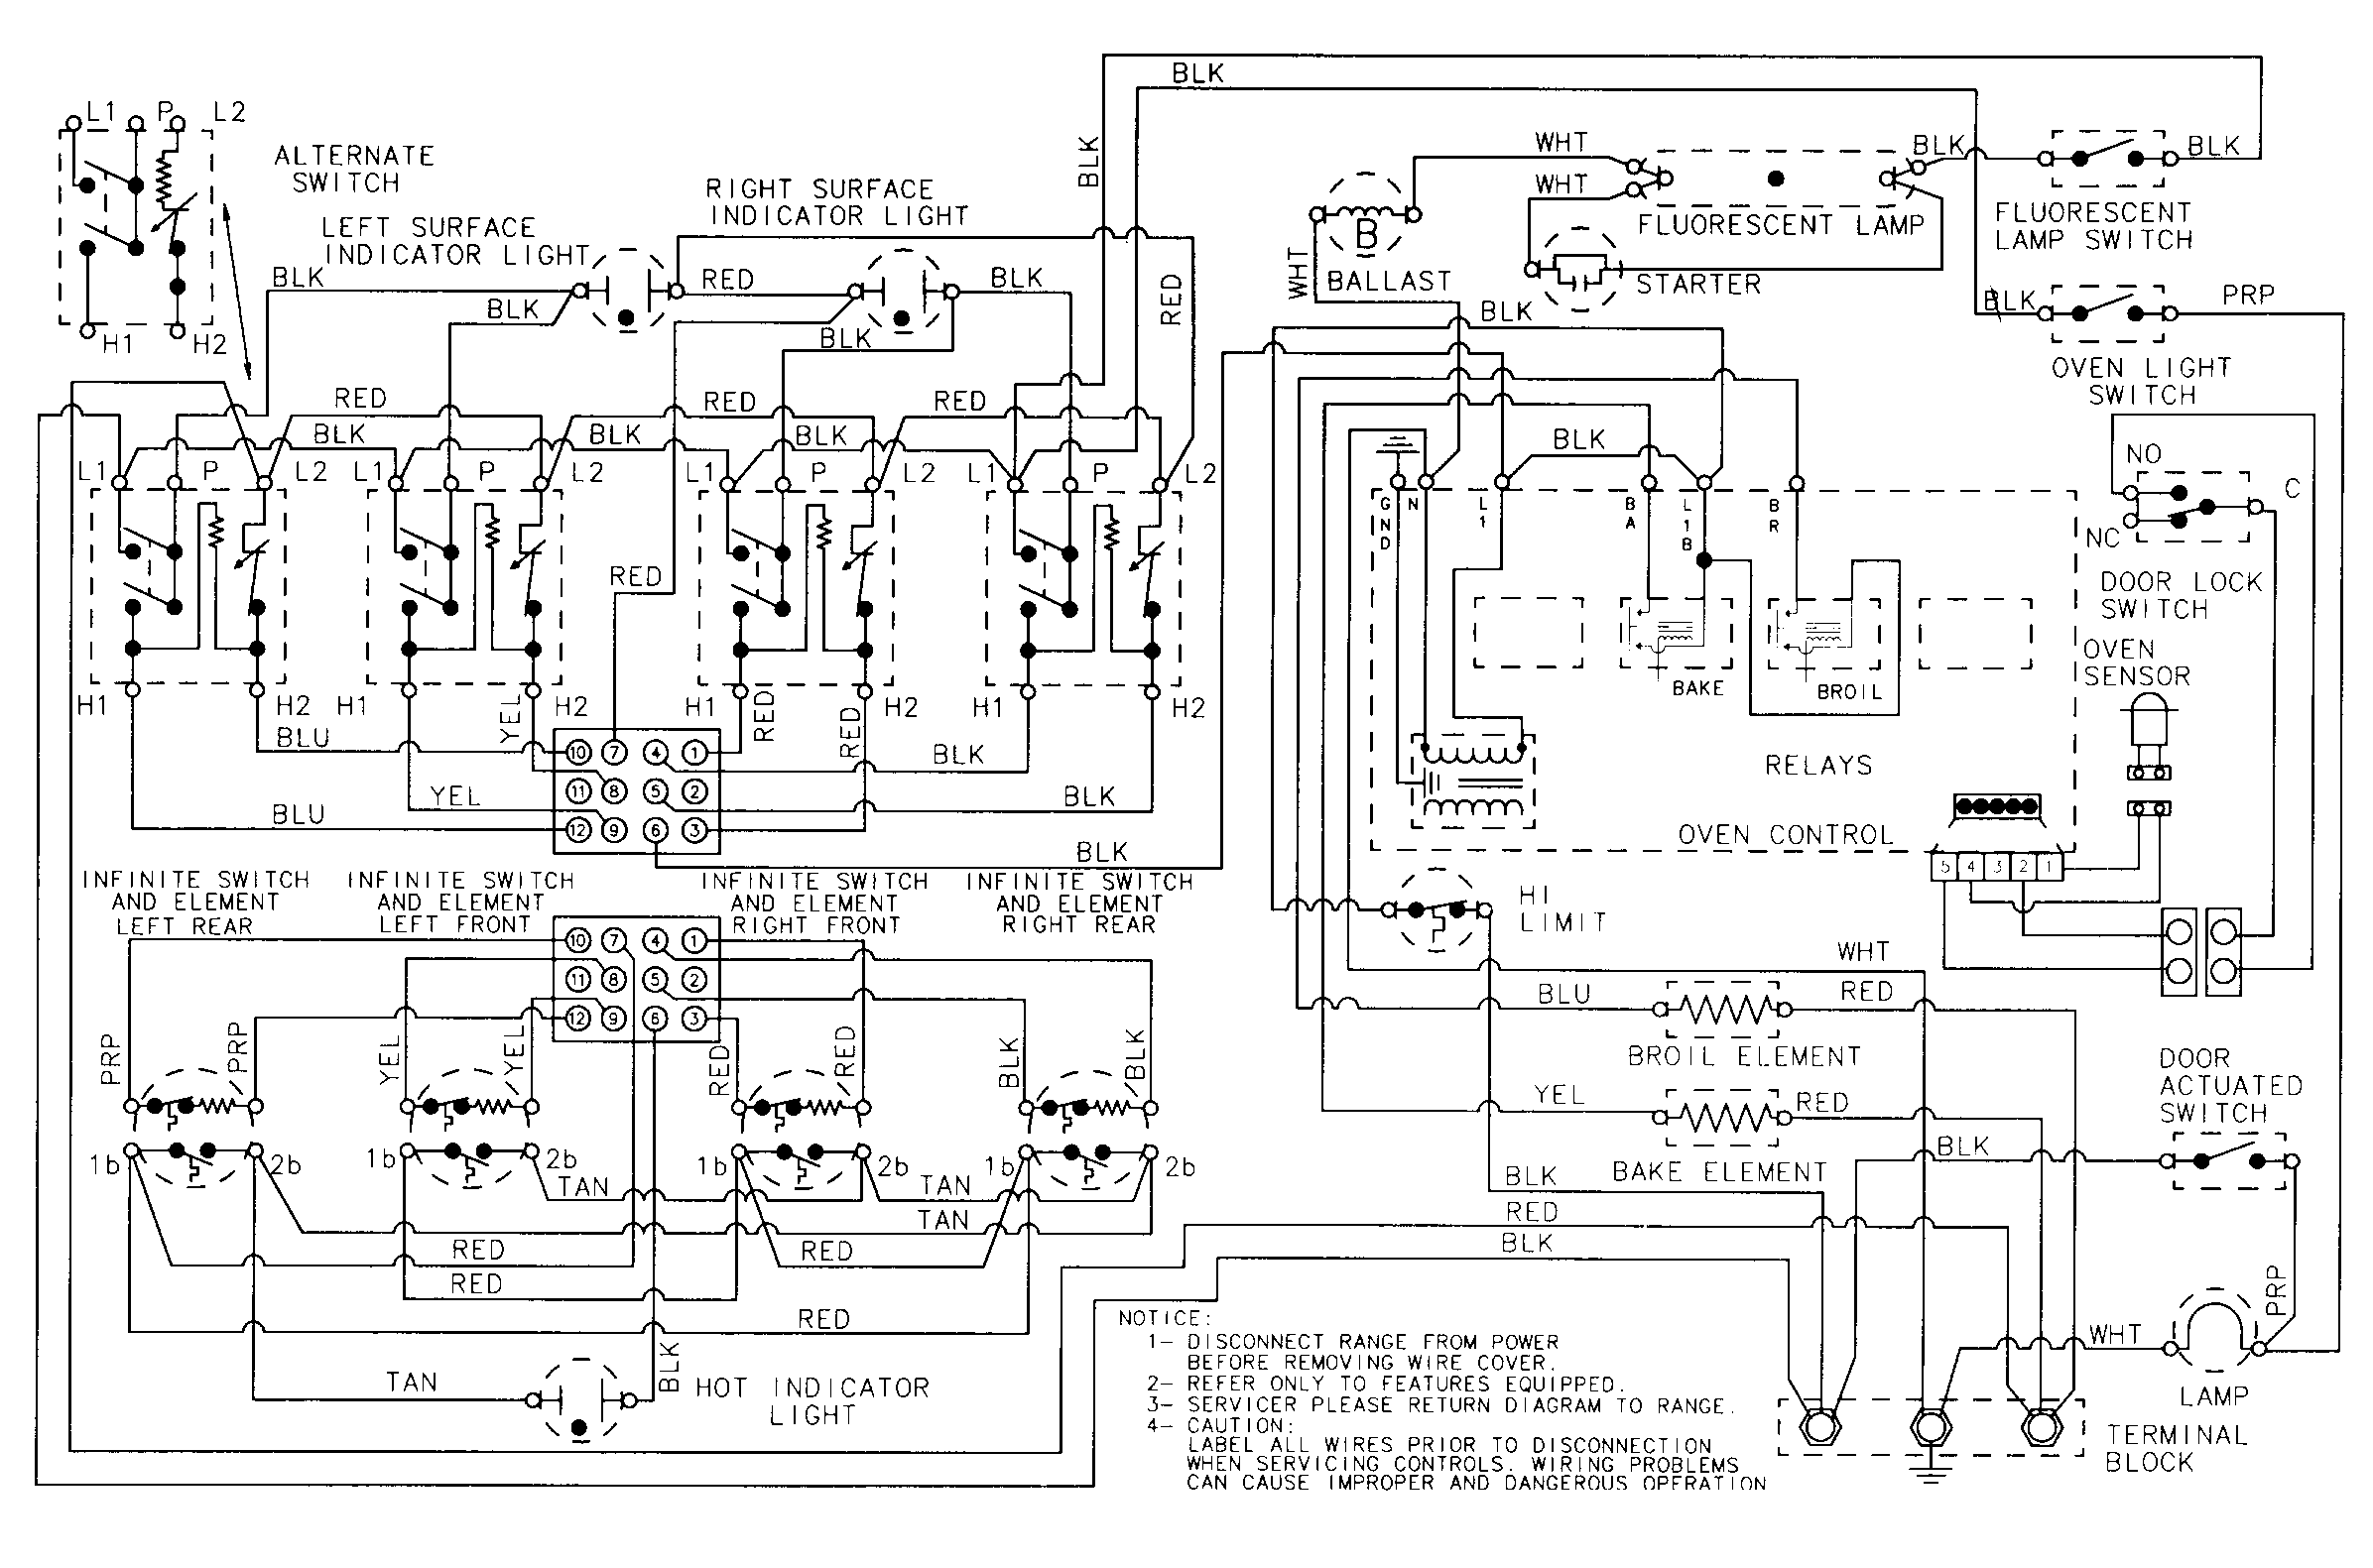 wiring information parts chiller control wiring diagram chiller ladder diagram \u2022 free york chiller control wiring diagram at webbmarketing.co